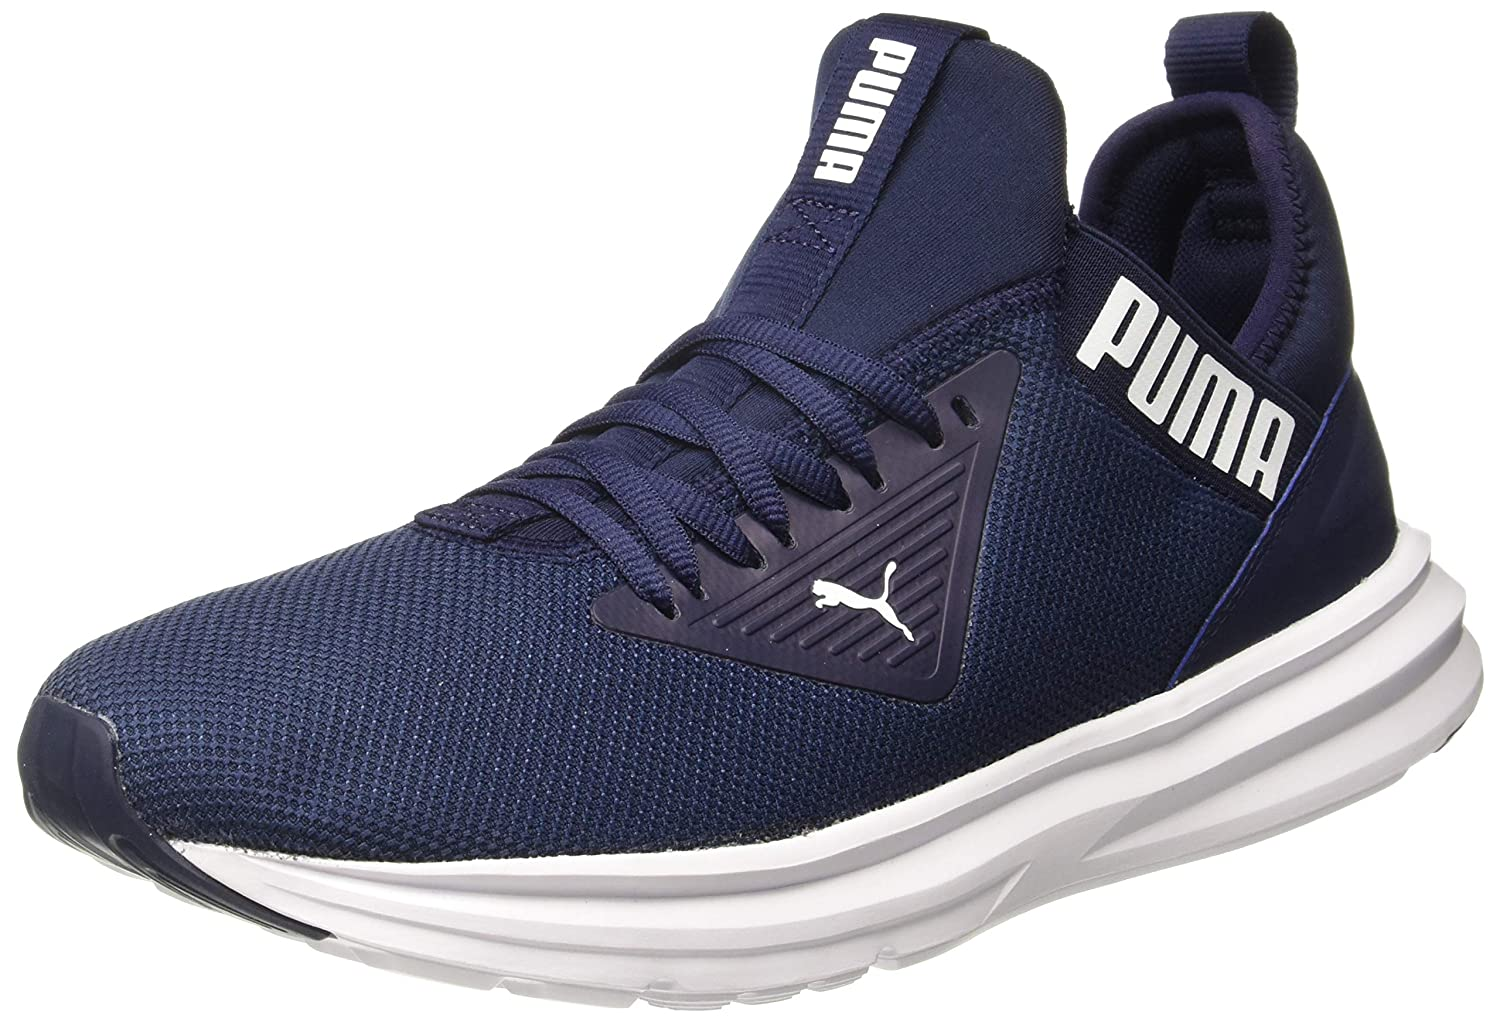 369009ee8ce8 Puma Men s Enzo Beta Running Shoes  Buy Online at Low Prices in India -  Amazon.in